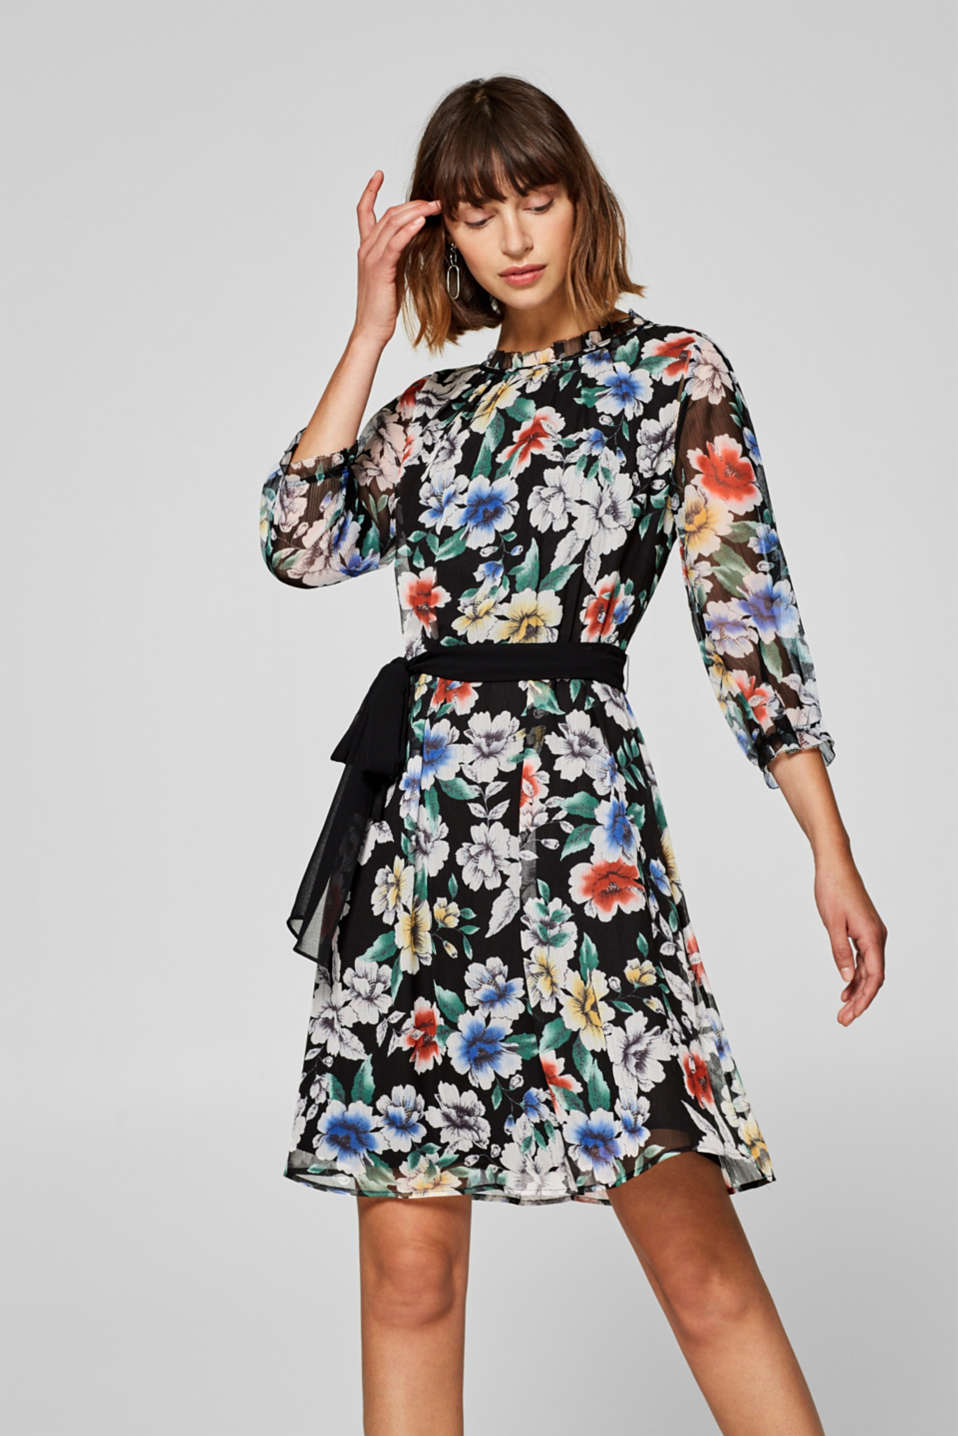 Esprit - Printed dress in textured chiffon